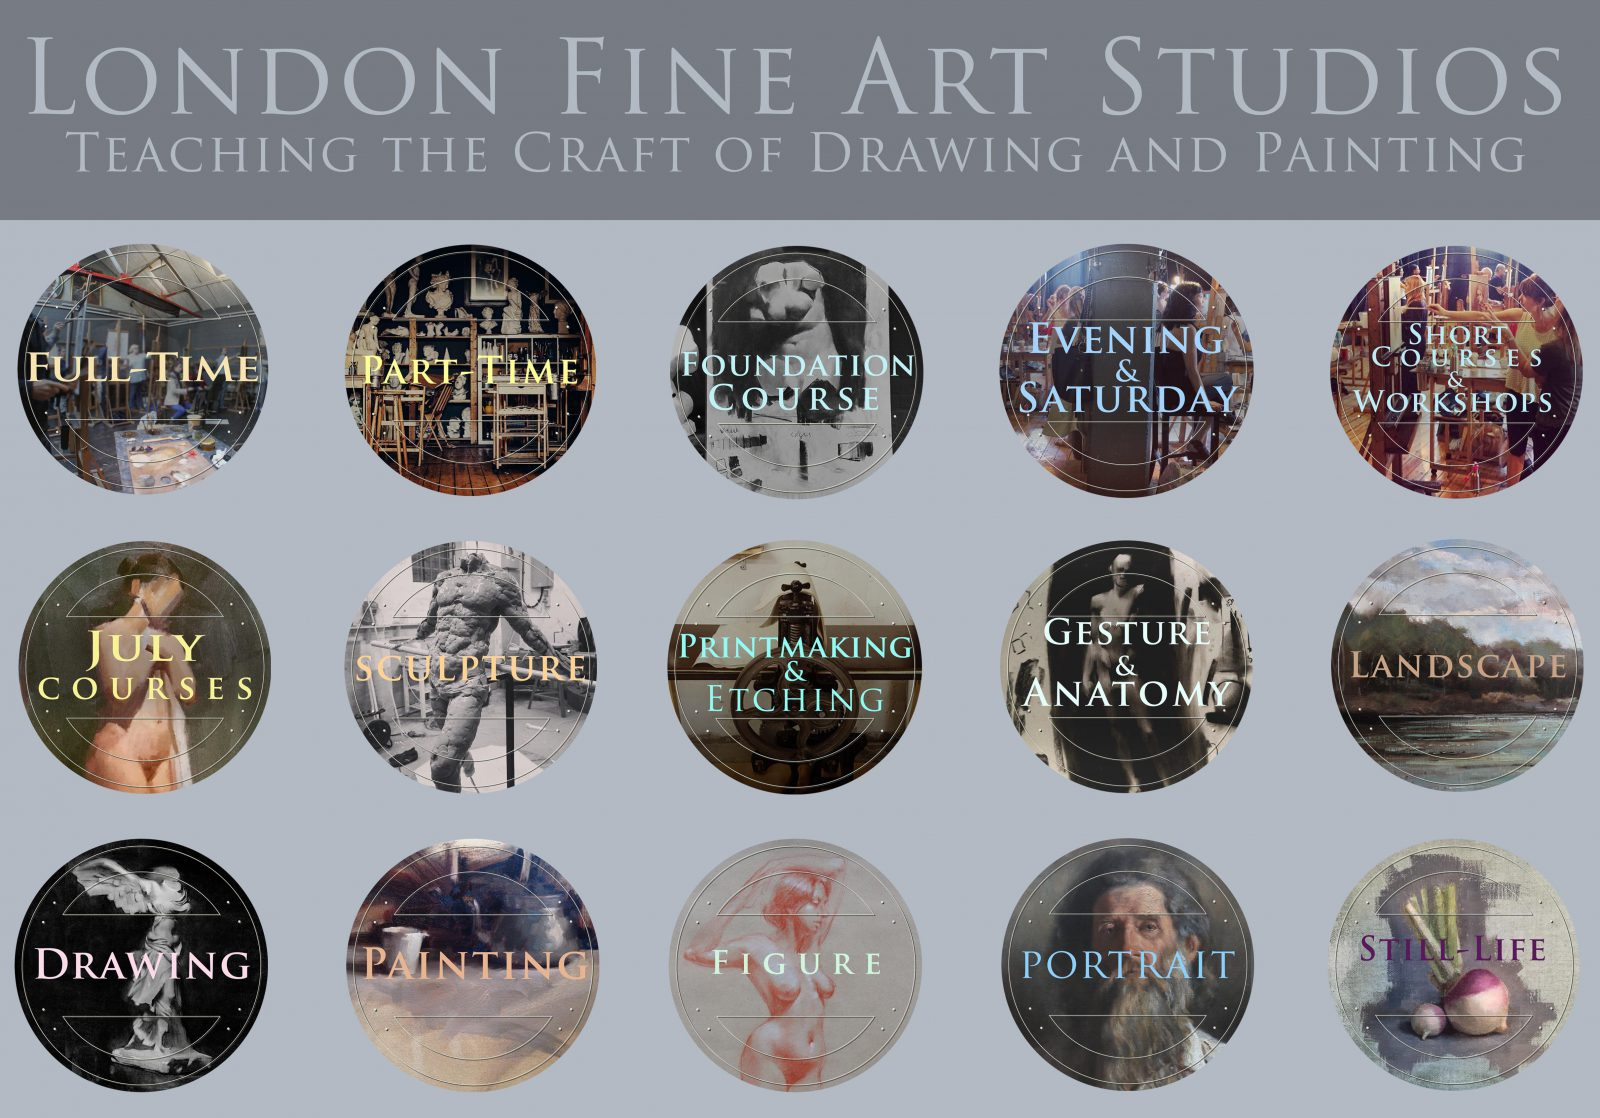 ATELIER ART COURSES IN LONDON